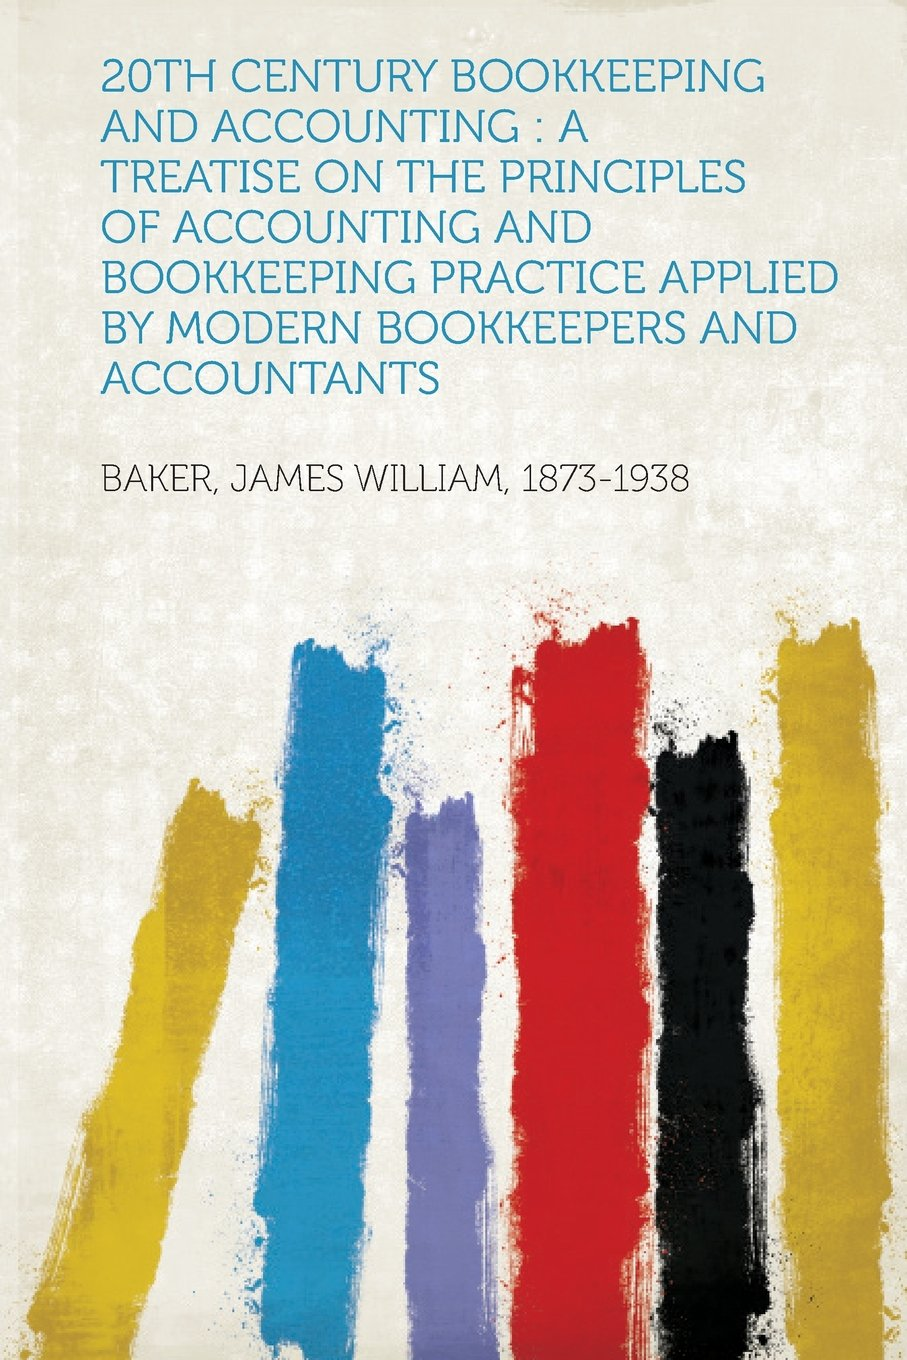 20th Century Bookkeeping and Accounting: A Treatise on the Principles of Accounting and Bookkeeping Practice Applied by Modern Bookkeepers and Account PDF